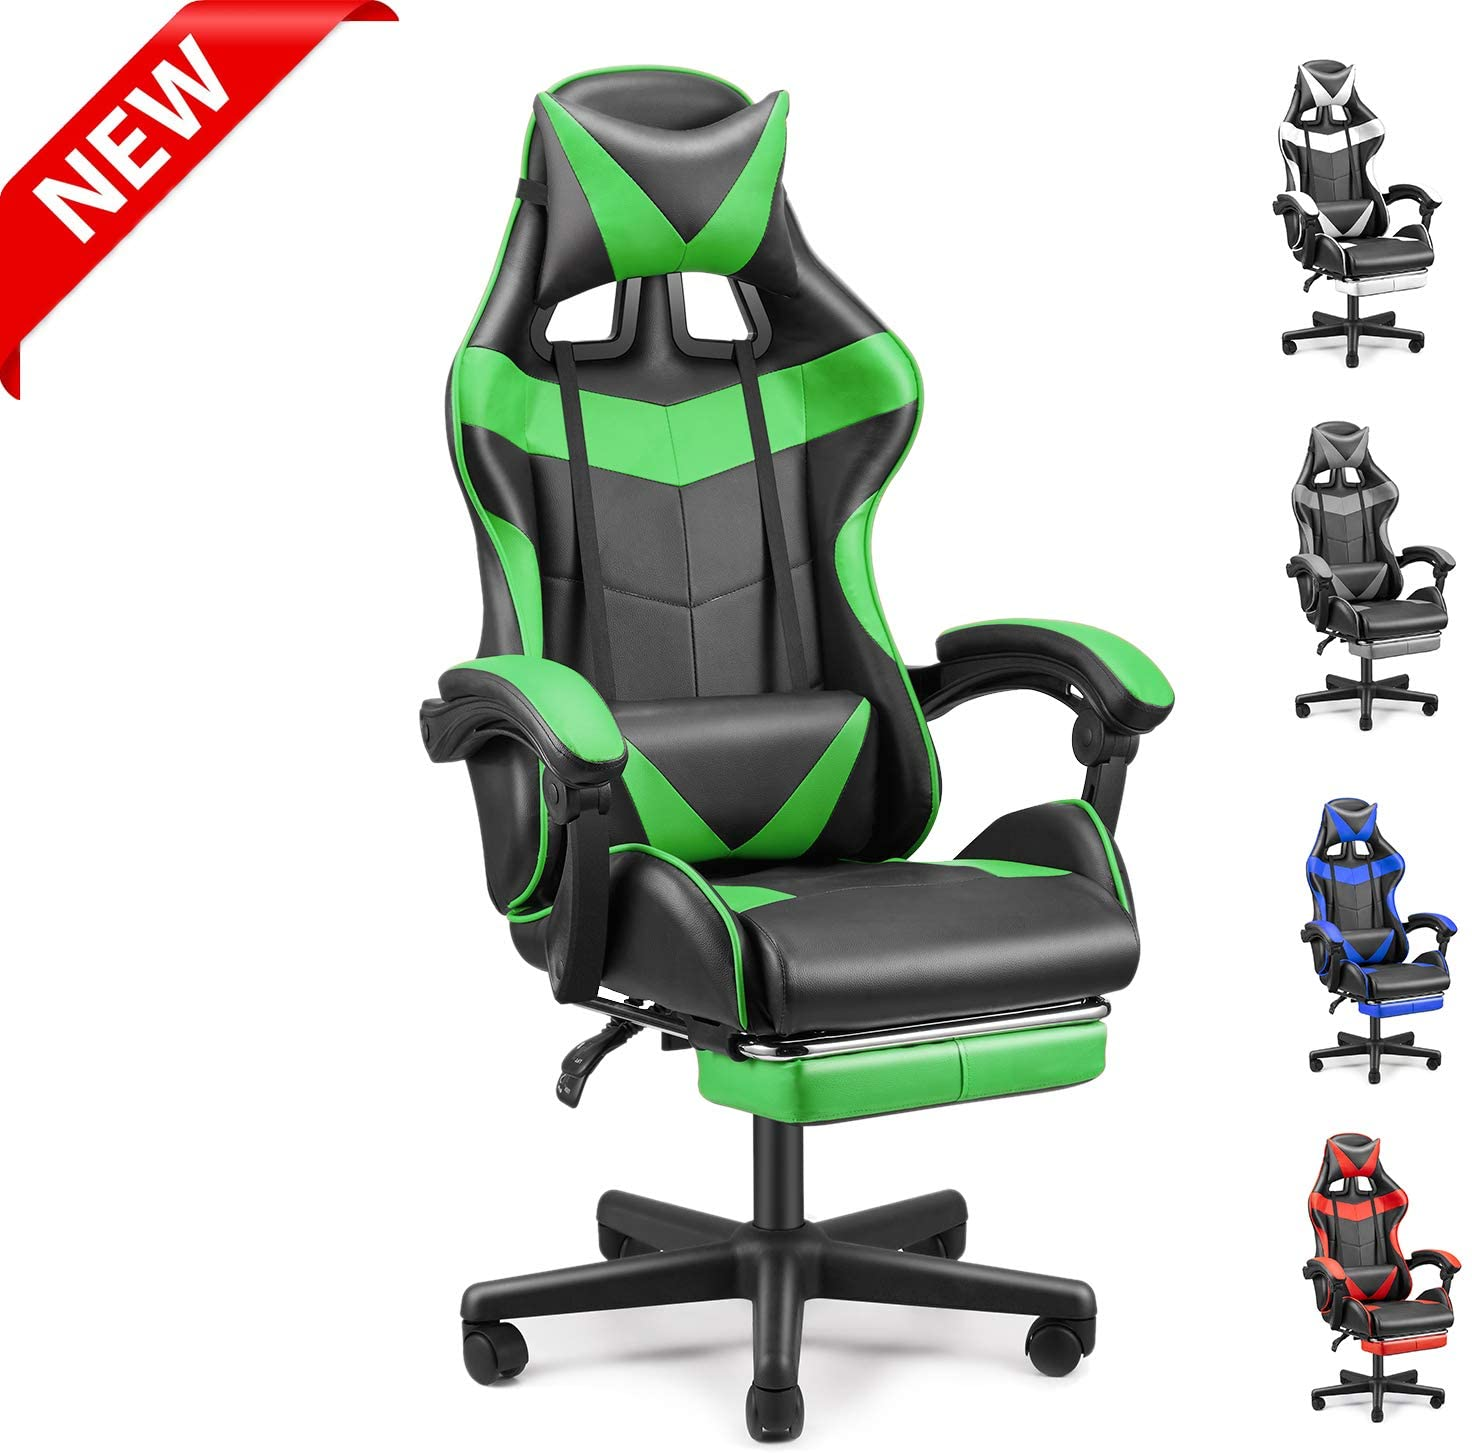 FERGHANA PC Gaming Chair,Racing Chair for Gaming,Computer Chair,E-Sports Chair,Ergonomic Office Chair with Retractable Footrest and Adjustable Headrest and Lumbar Support(Jungle Green)